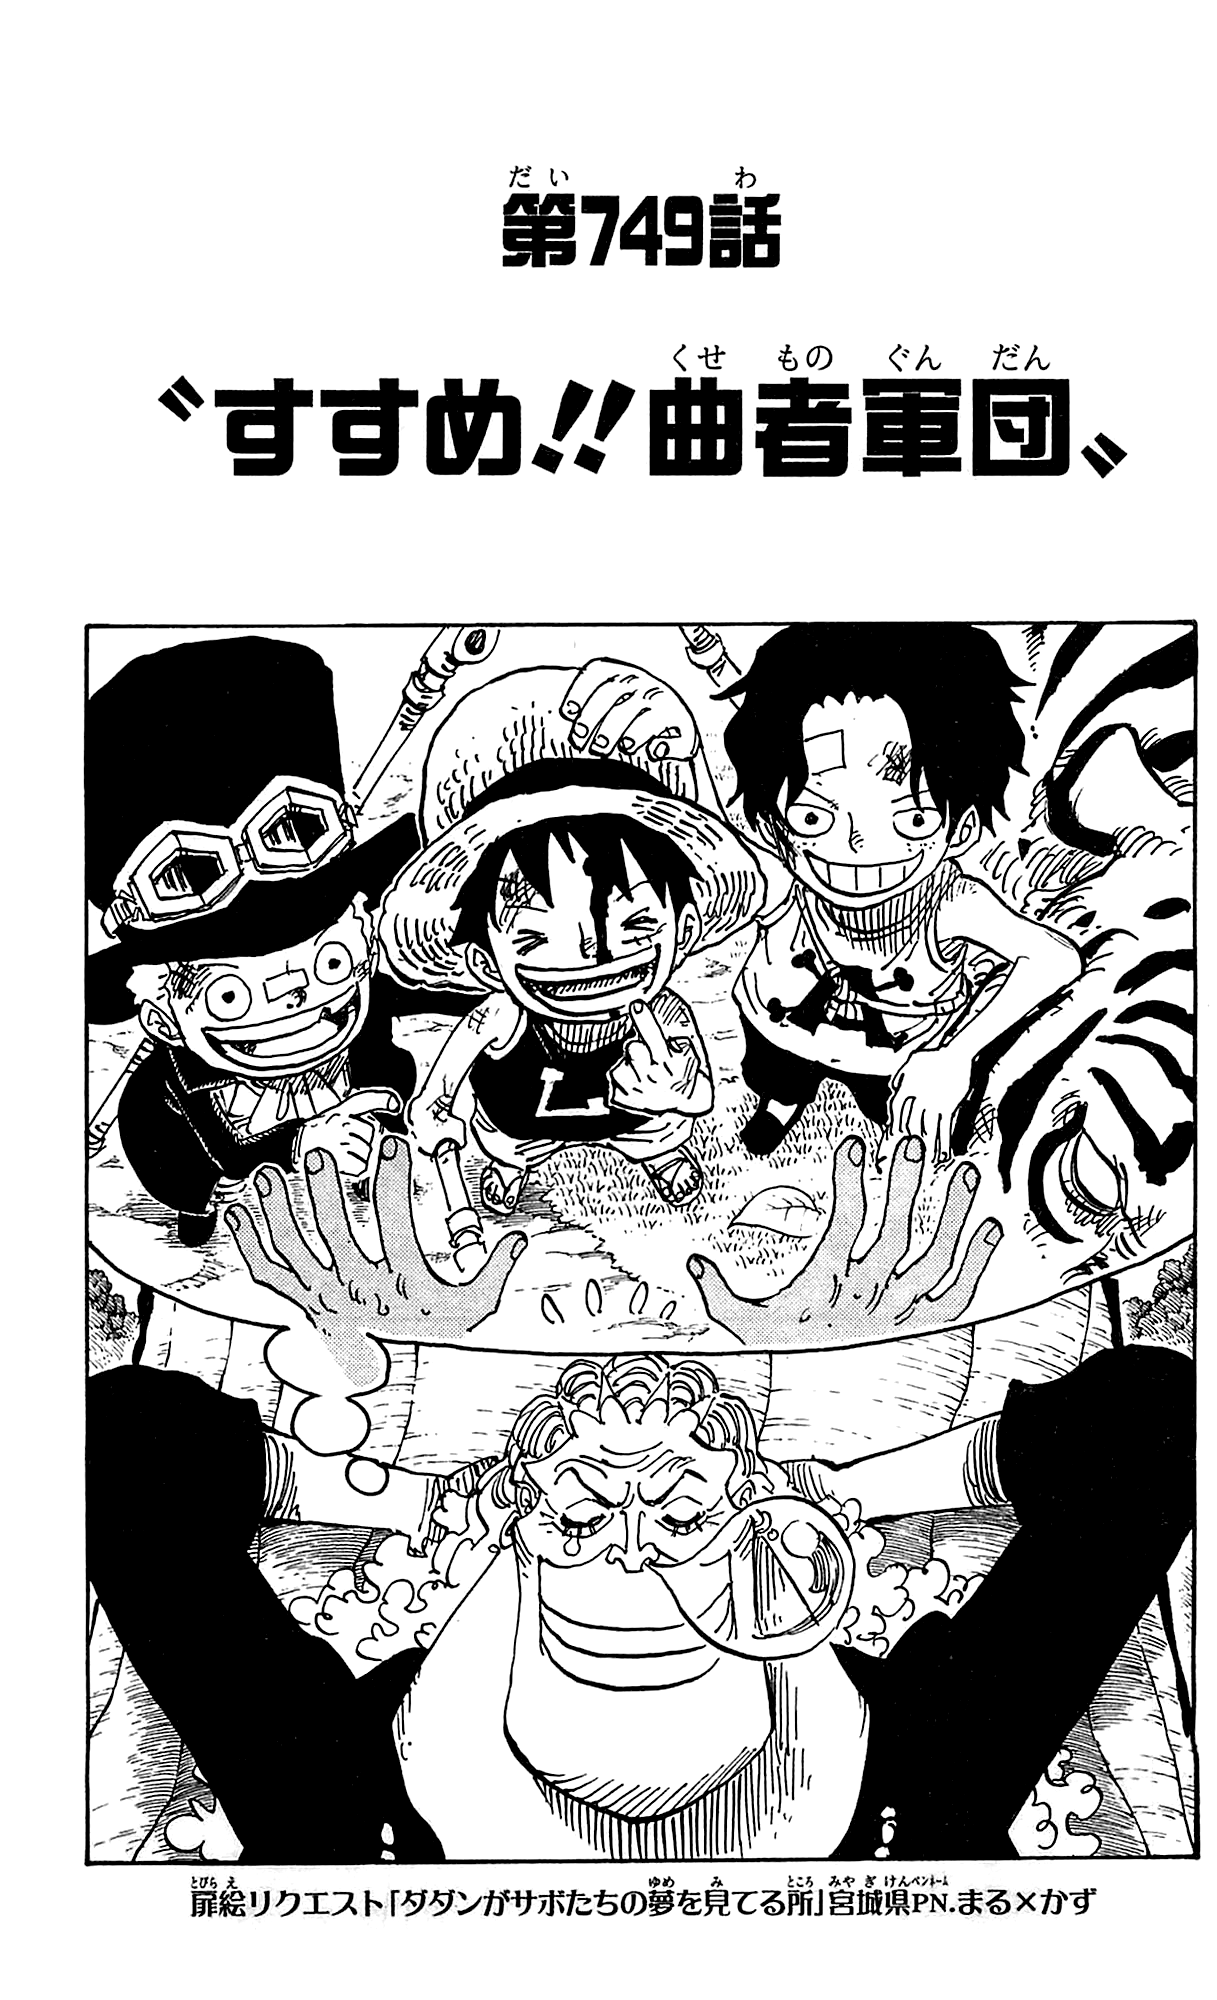 Chapter 749 | One Piece Wiki | FANDOM powered by Wikia